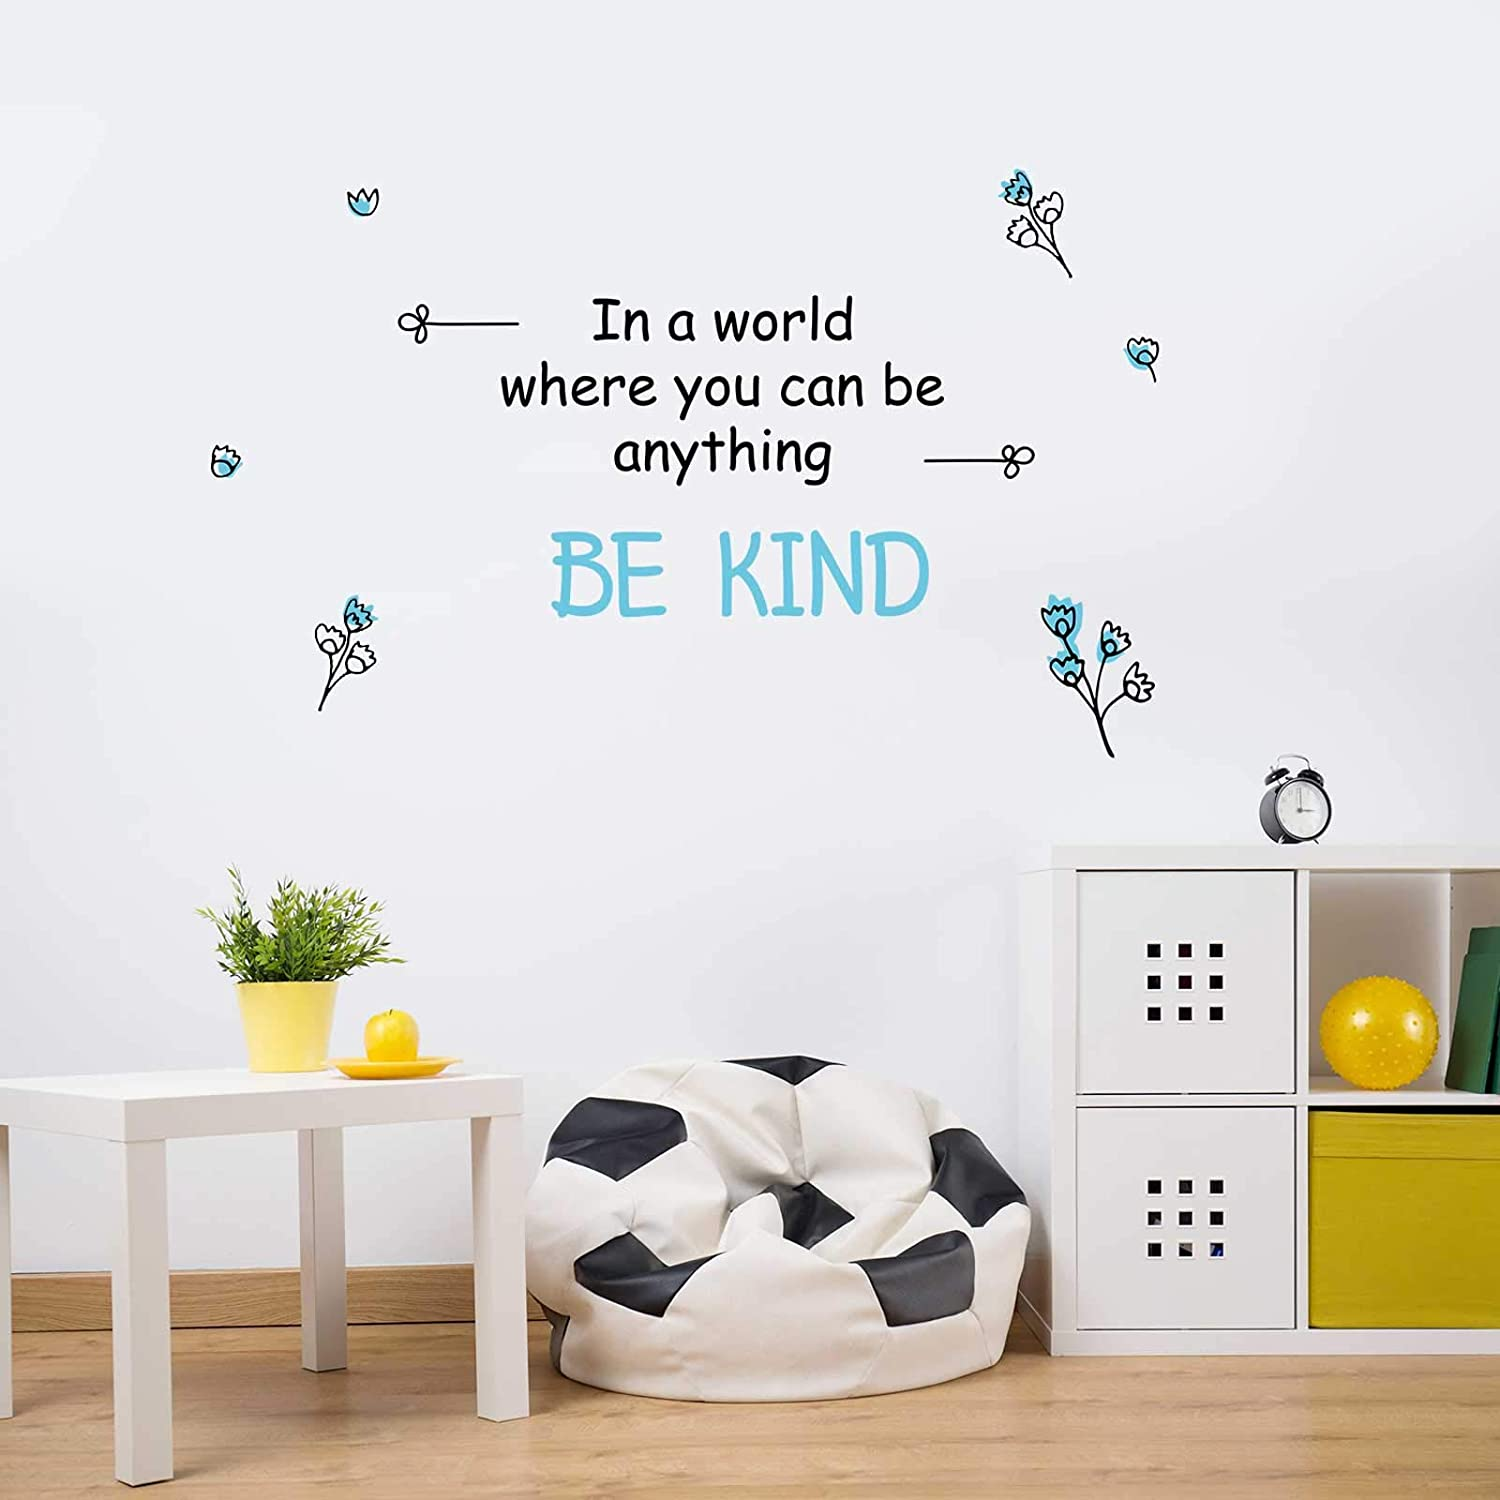 Zonon Be Kind Wall Decals in a World Wall Stickers Inspirational Quotes Wall Decals Lettering Wall Sayings Stickers for Bedroom Living Room School Office Home Decoration, 3 Sheet